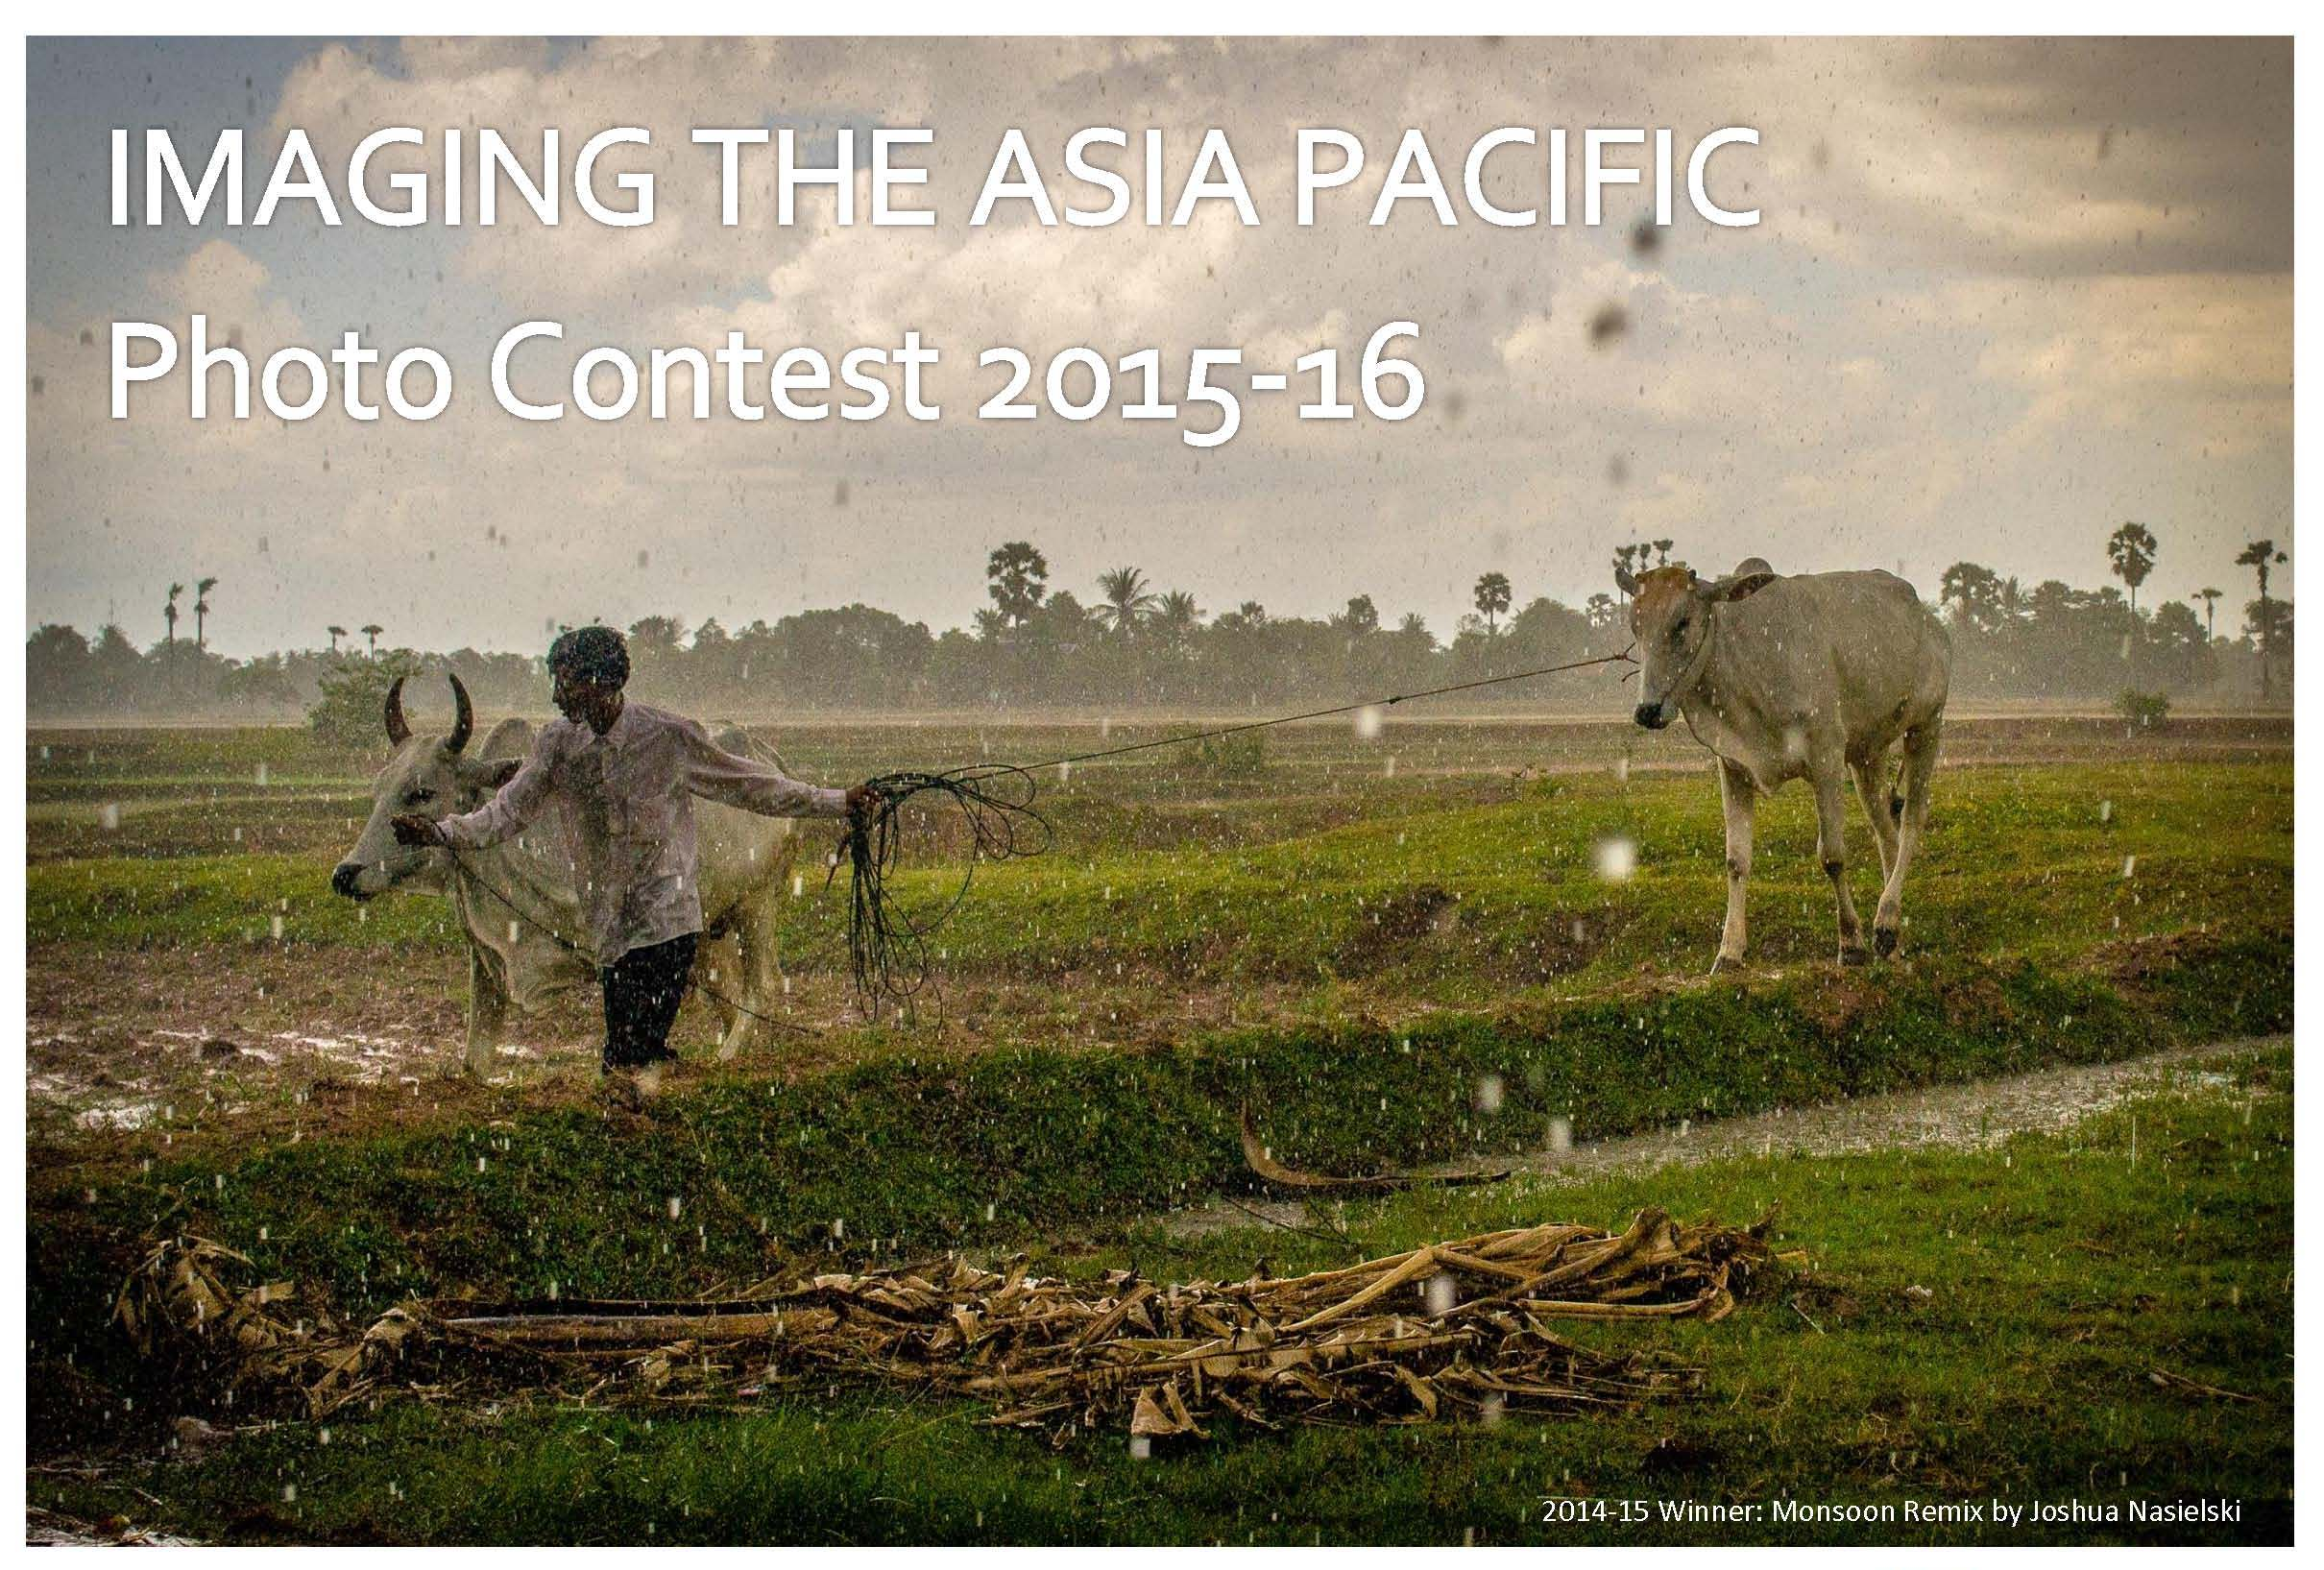 Imaging the Asia Pacific Photo Contest